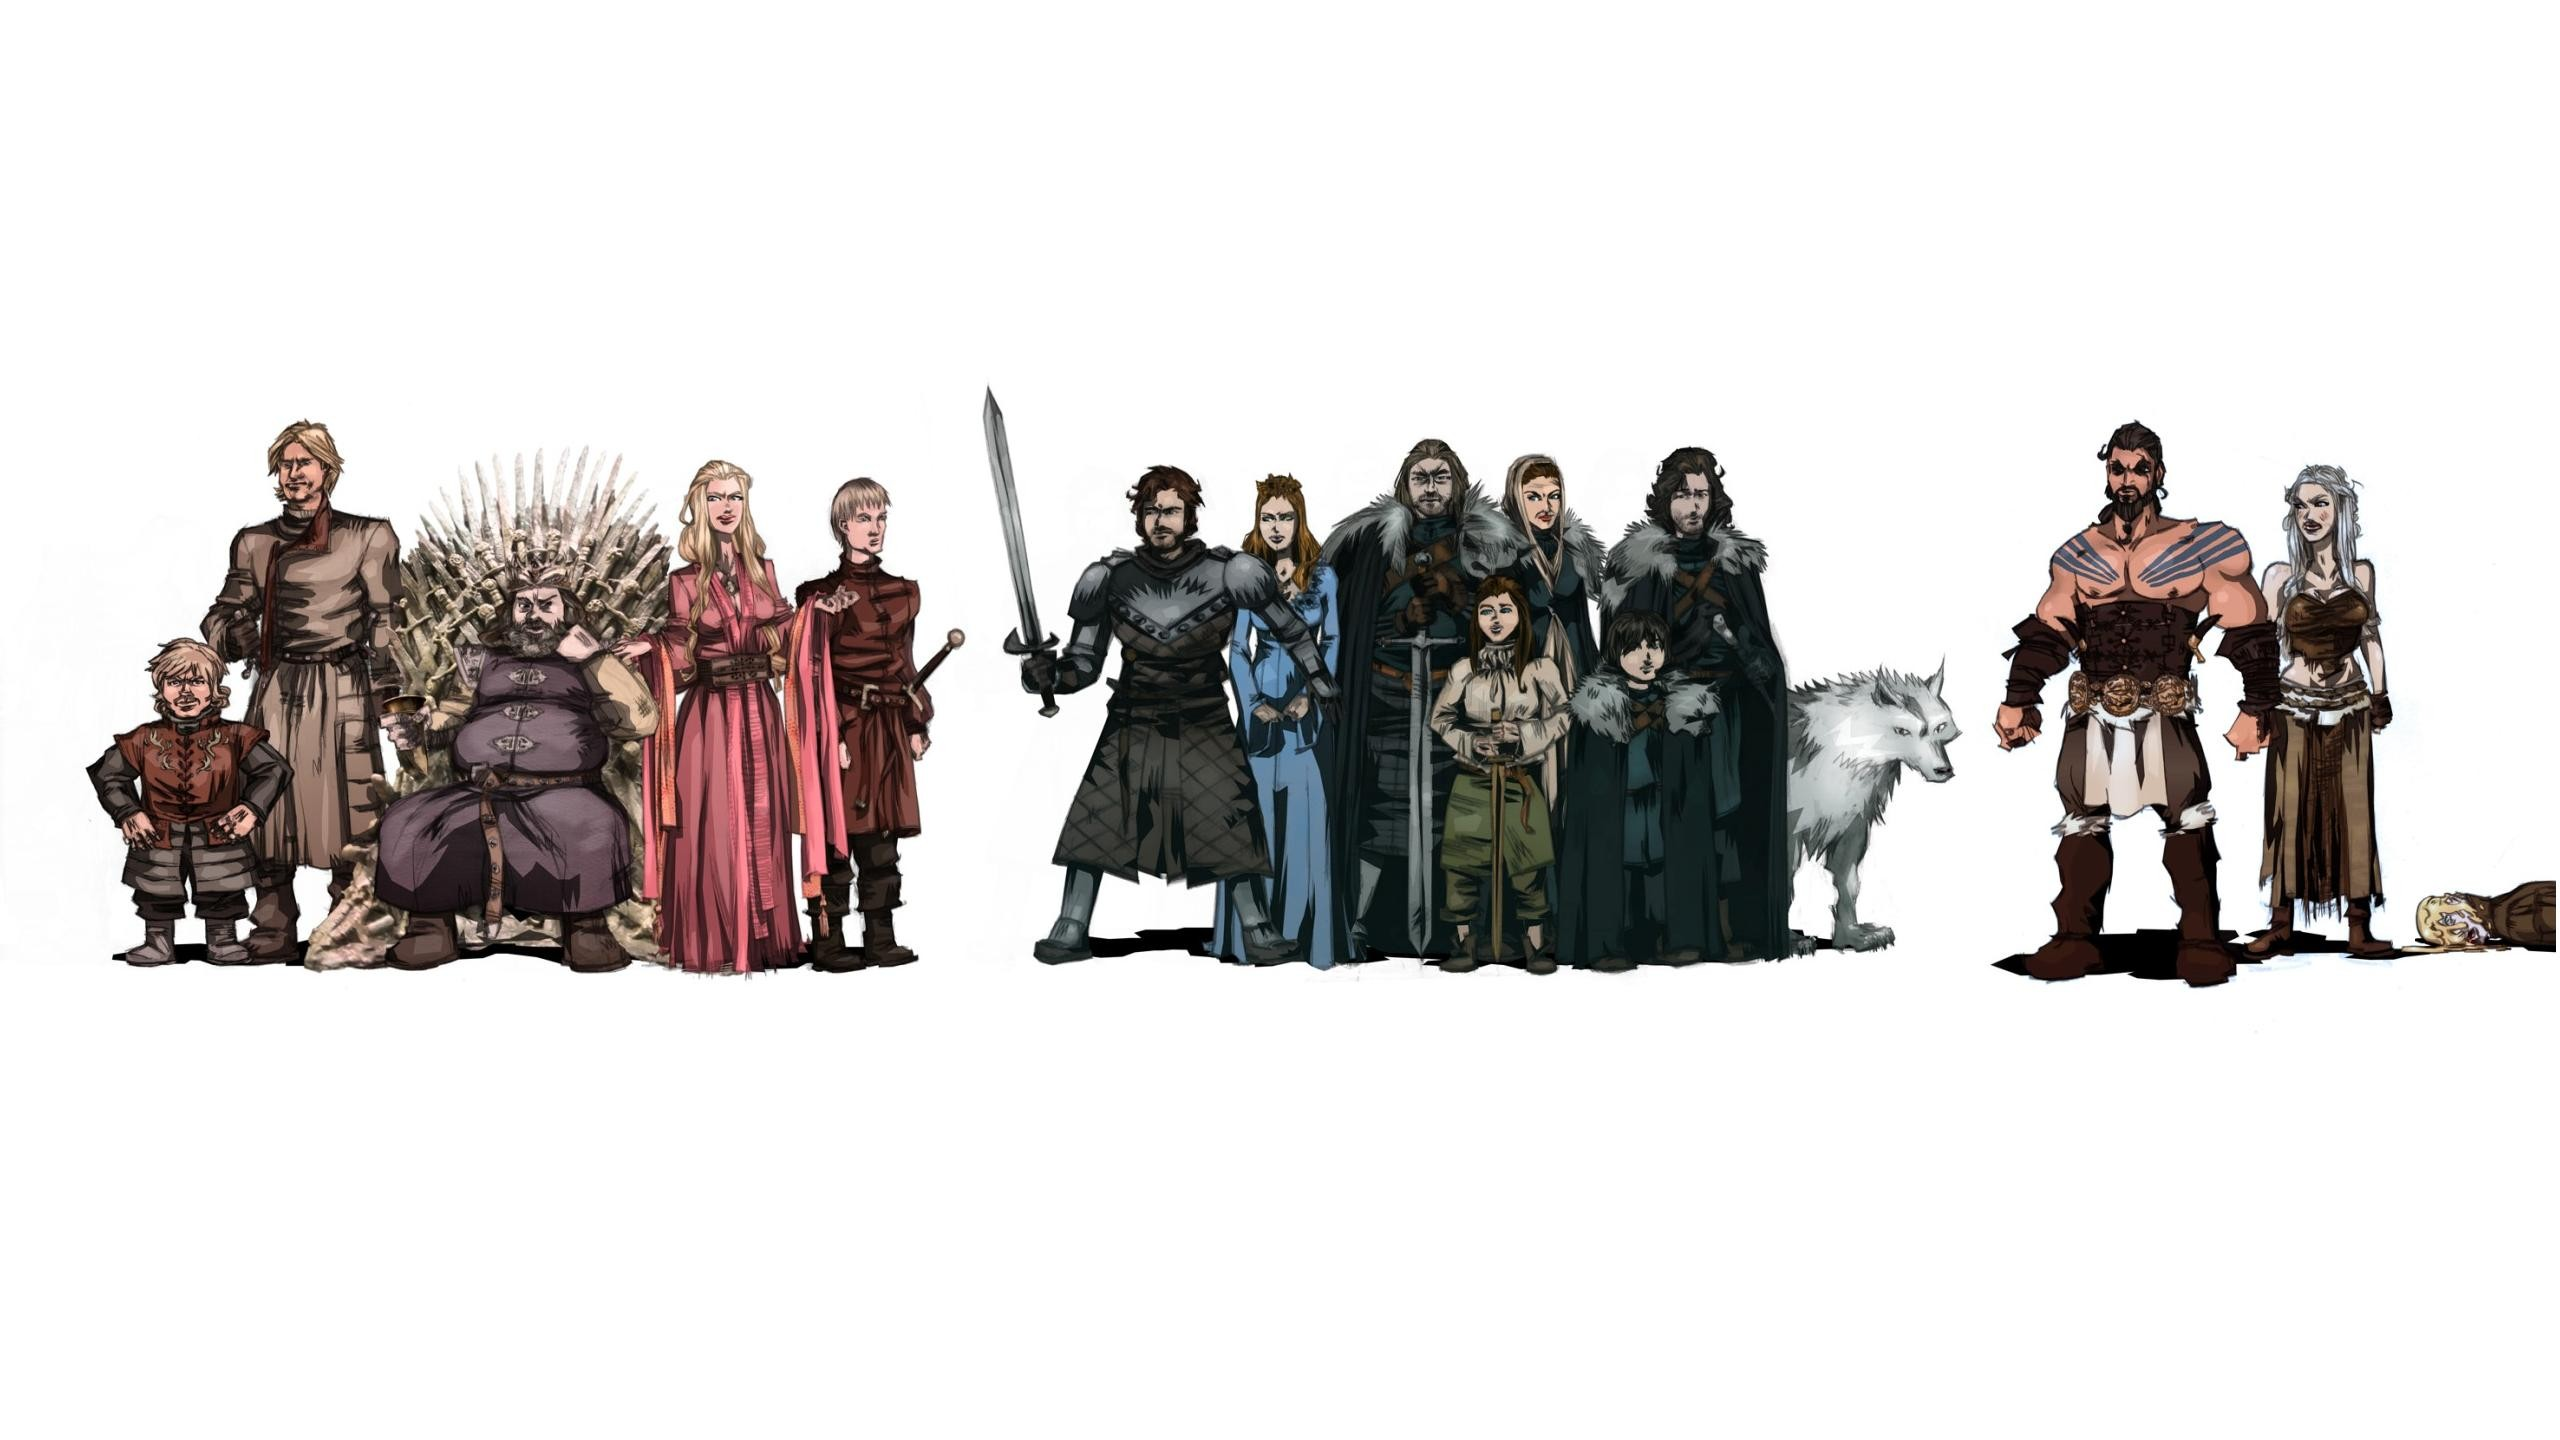 Draw Game of Thrones Game of Thrones White Drawing